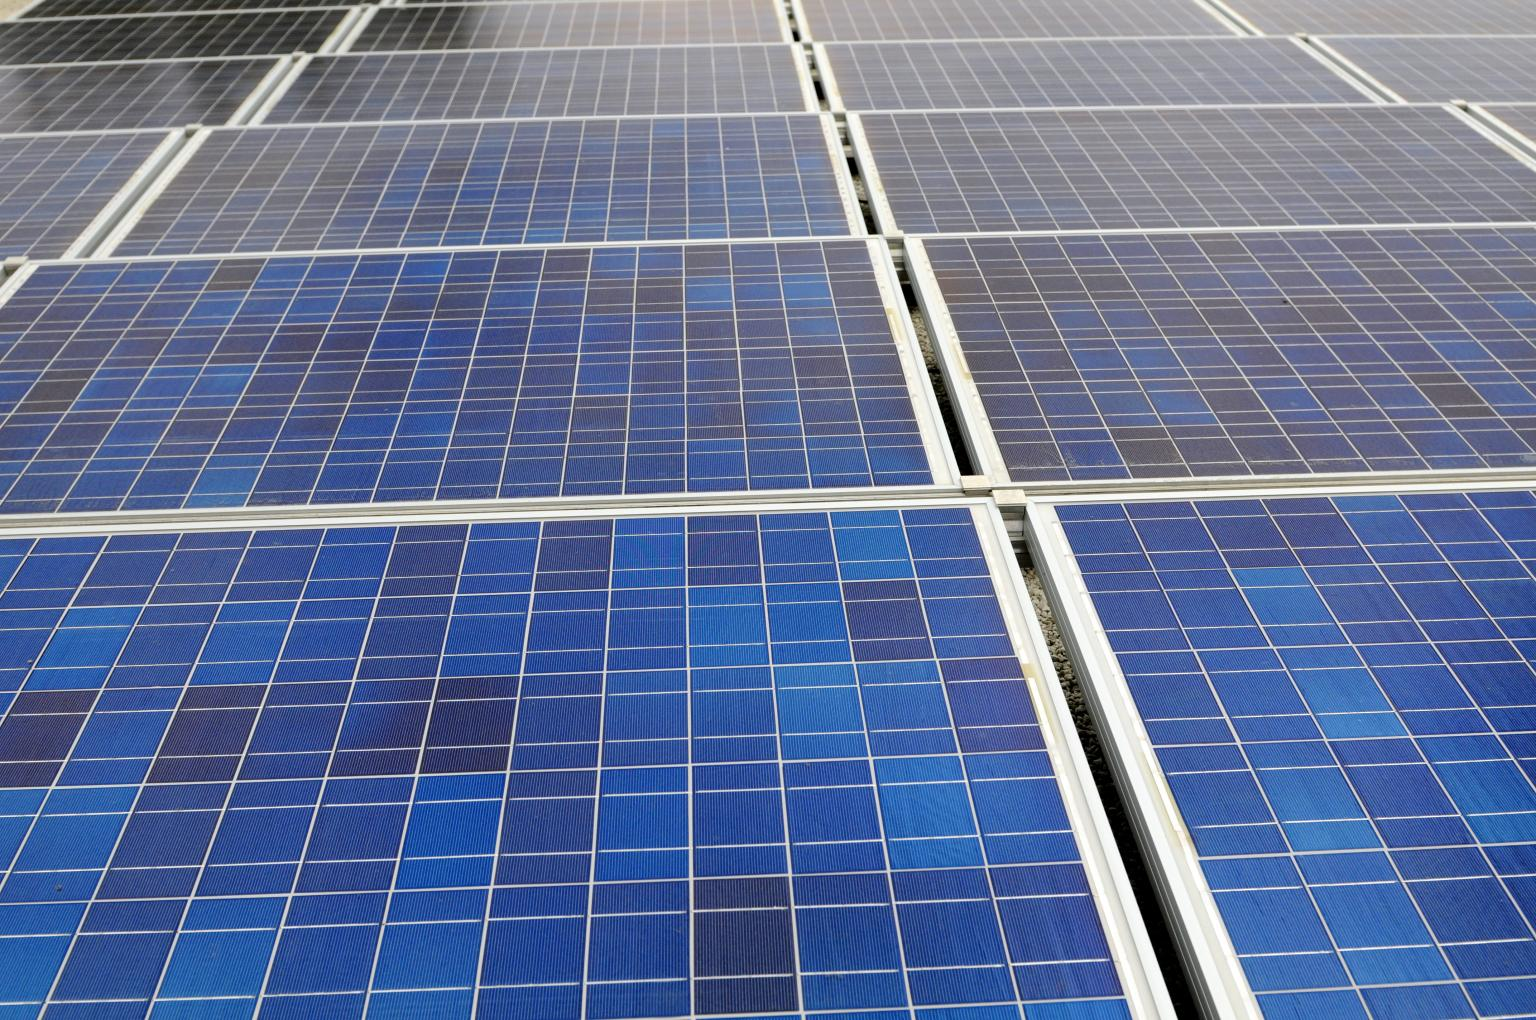 Roof-based photovoltaic systems are increasingly being used by companies to improve energy efficiency. Image courtesy of DuPont